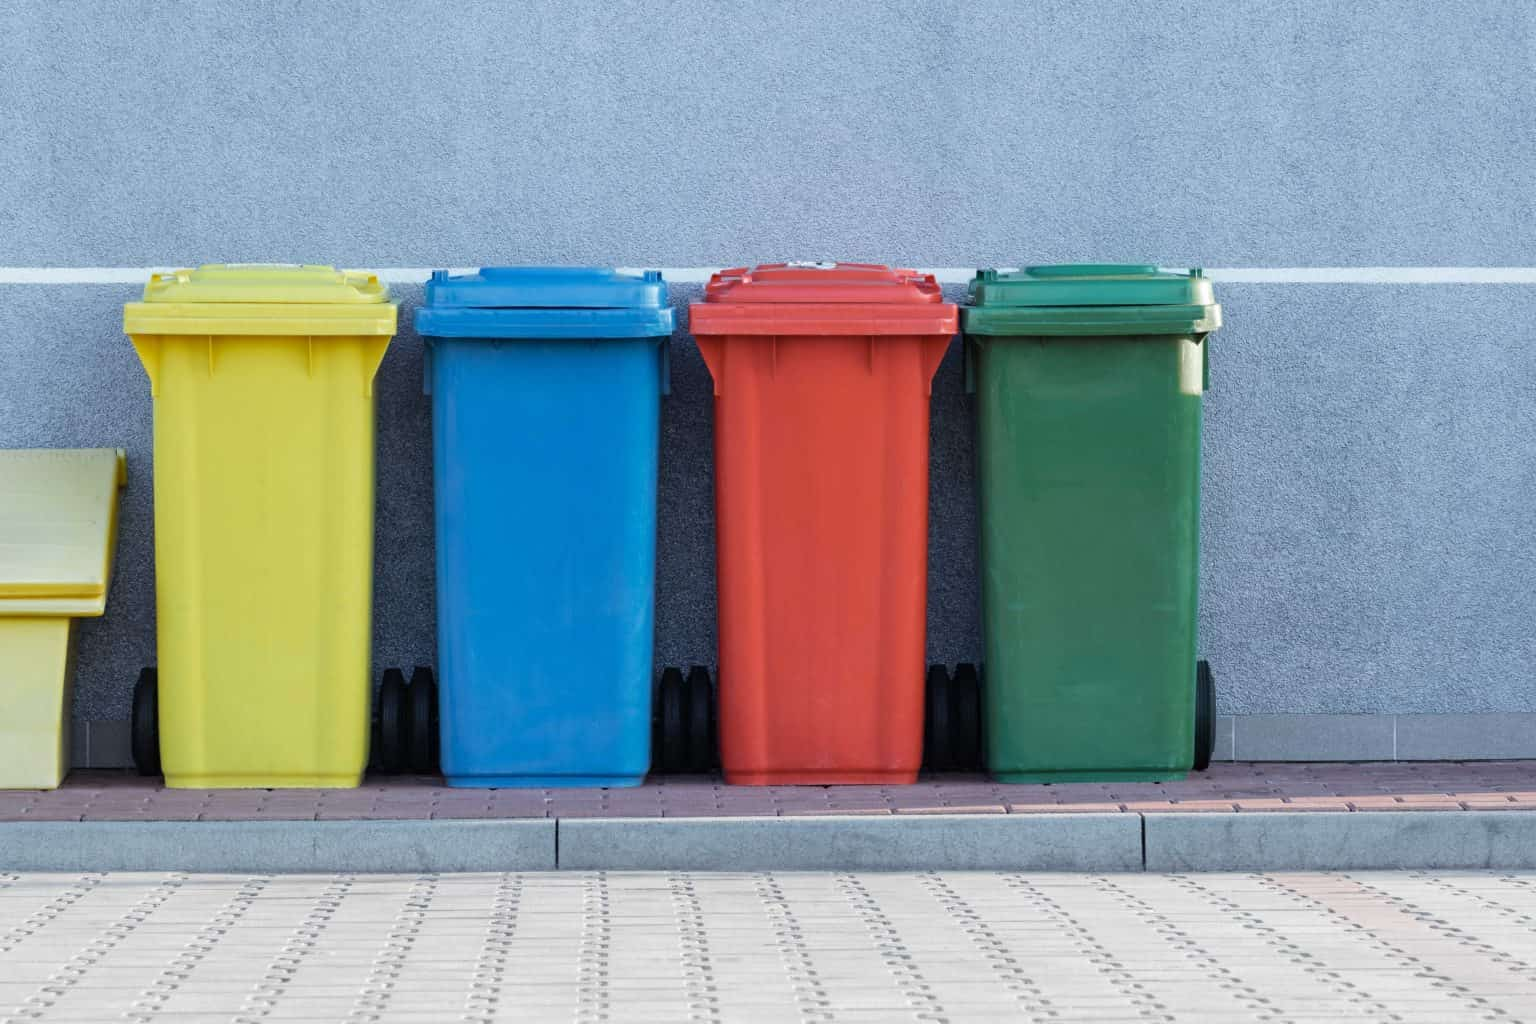 yello, blue, red and green waste bins lined up outside against a wall